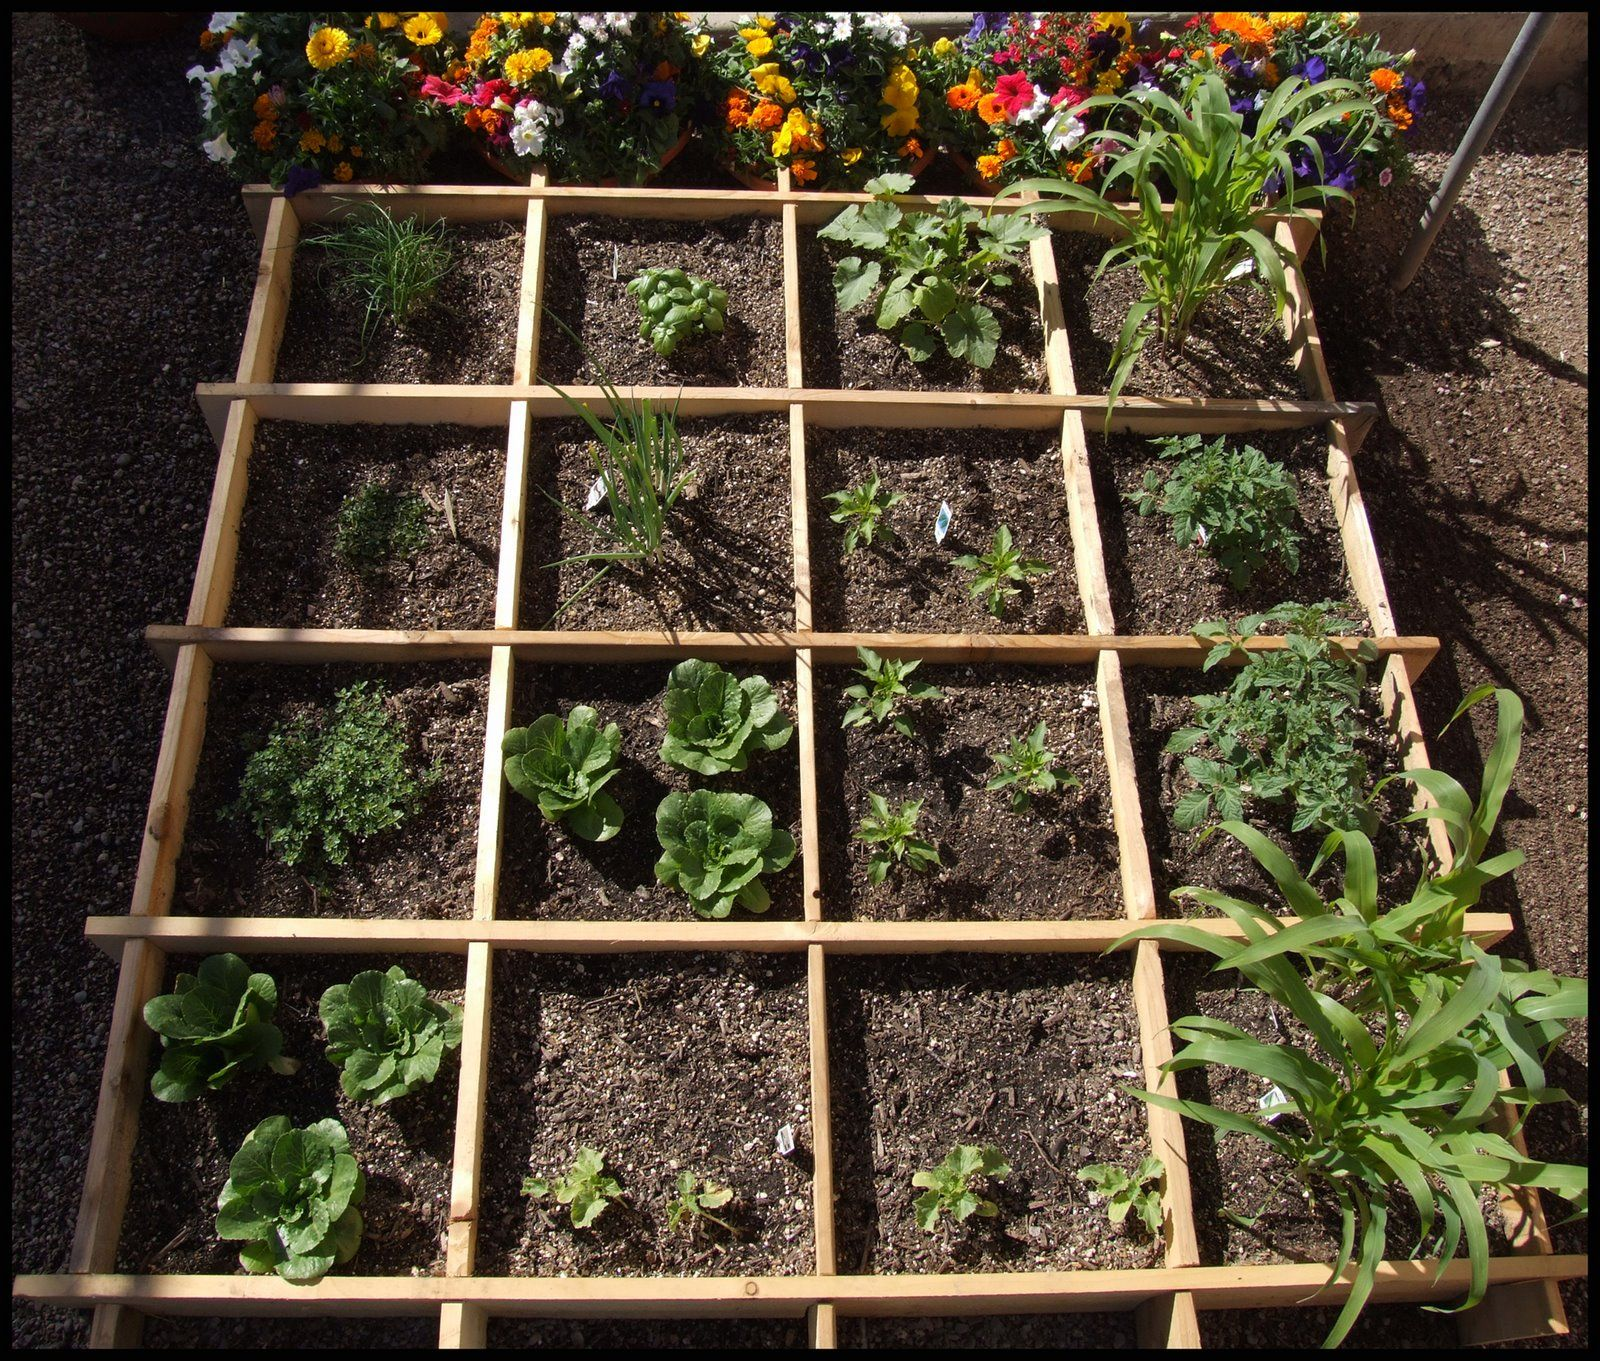 Warmer weather has me thinking about some square foot gardening for ...